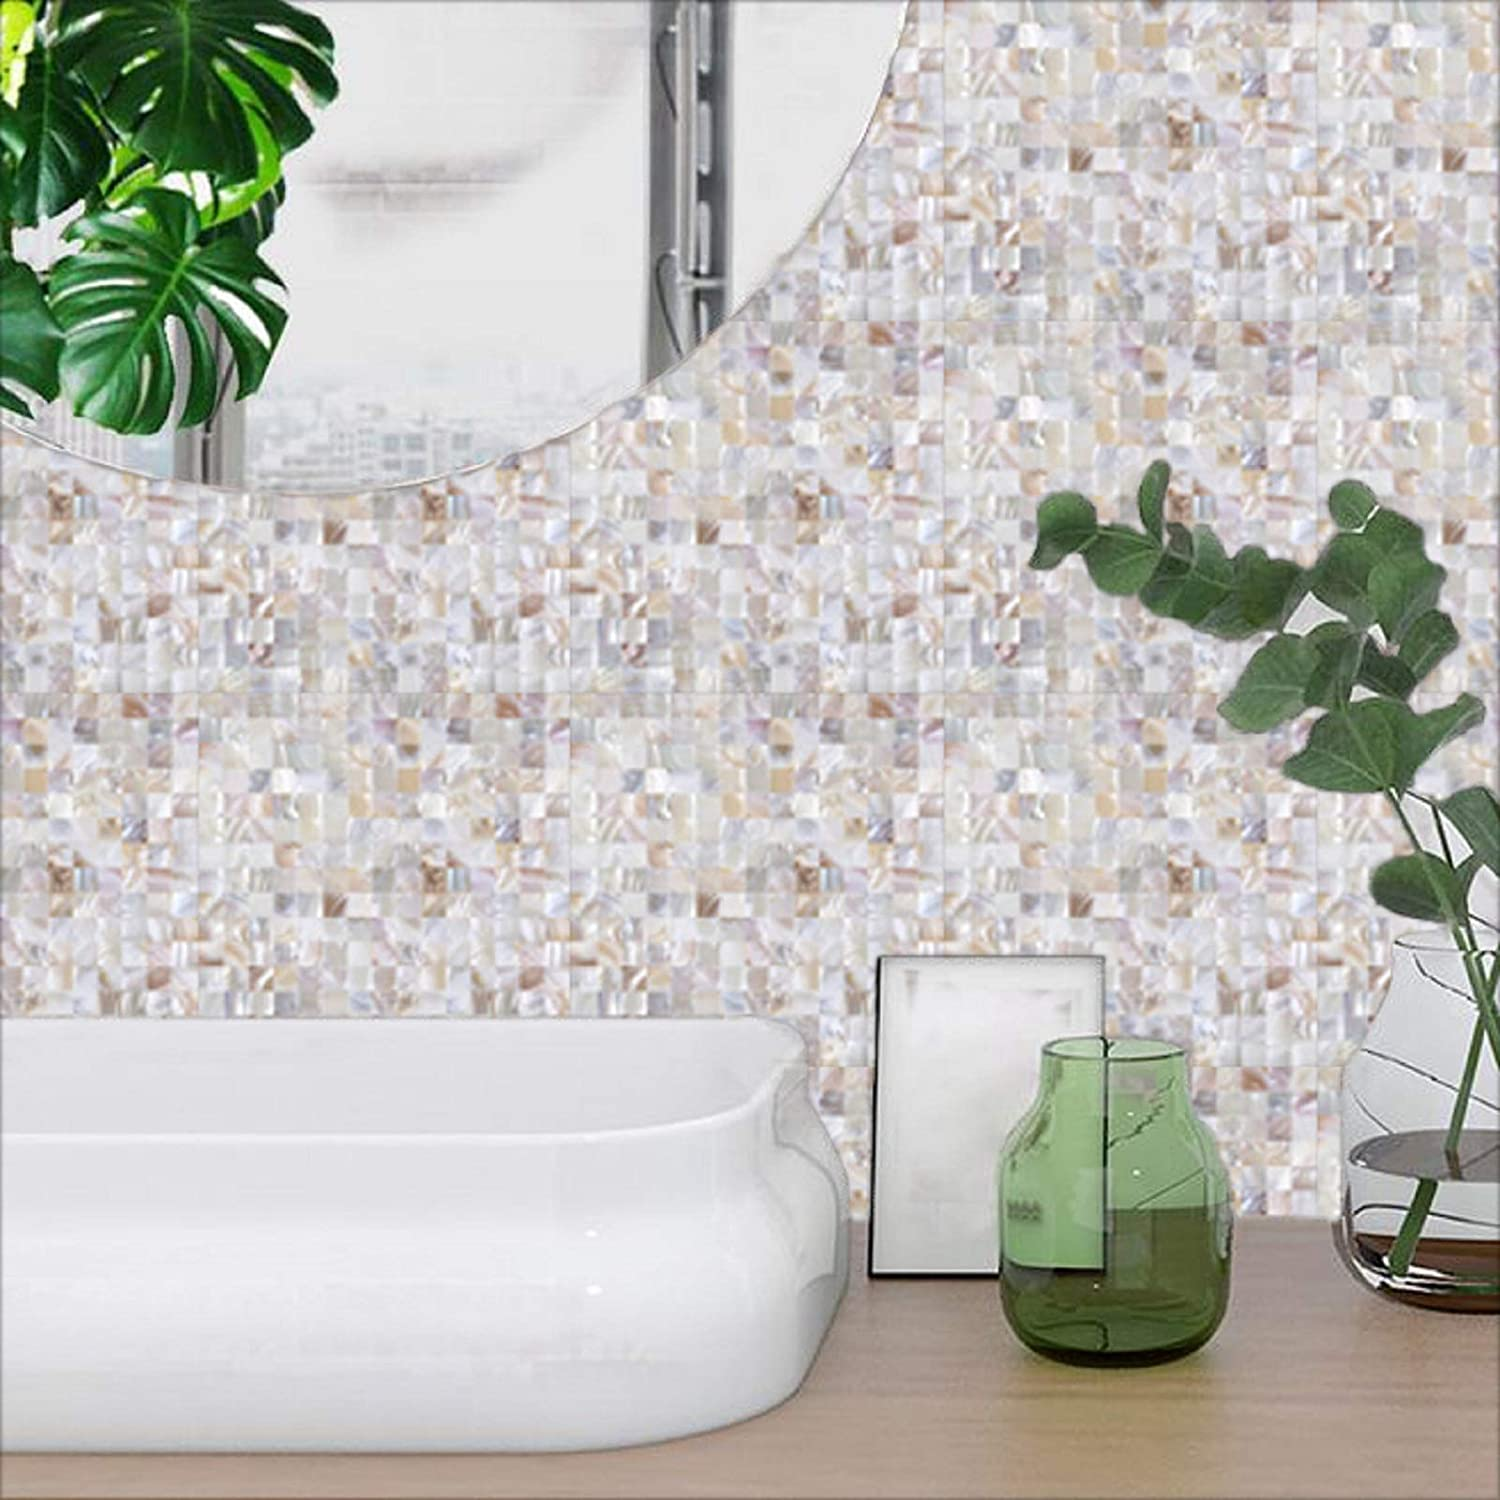 12X12X0.079 2MM 6 Sheets DIY Peel and Stick 3D Wall Decor Genuine Mother of Pearl Shell Mosaic Tile for Kitchen Backsplash Jhana Tile Natural Color, Box of 6 Sheets Bathroom Accent Wall